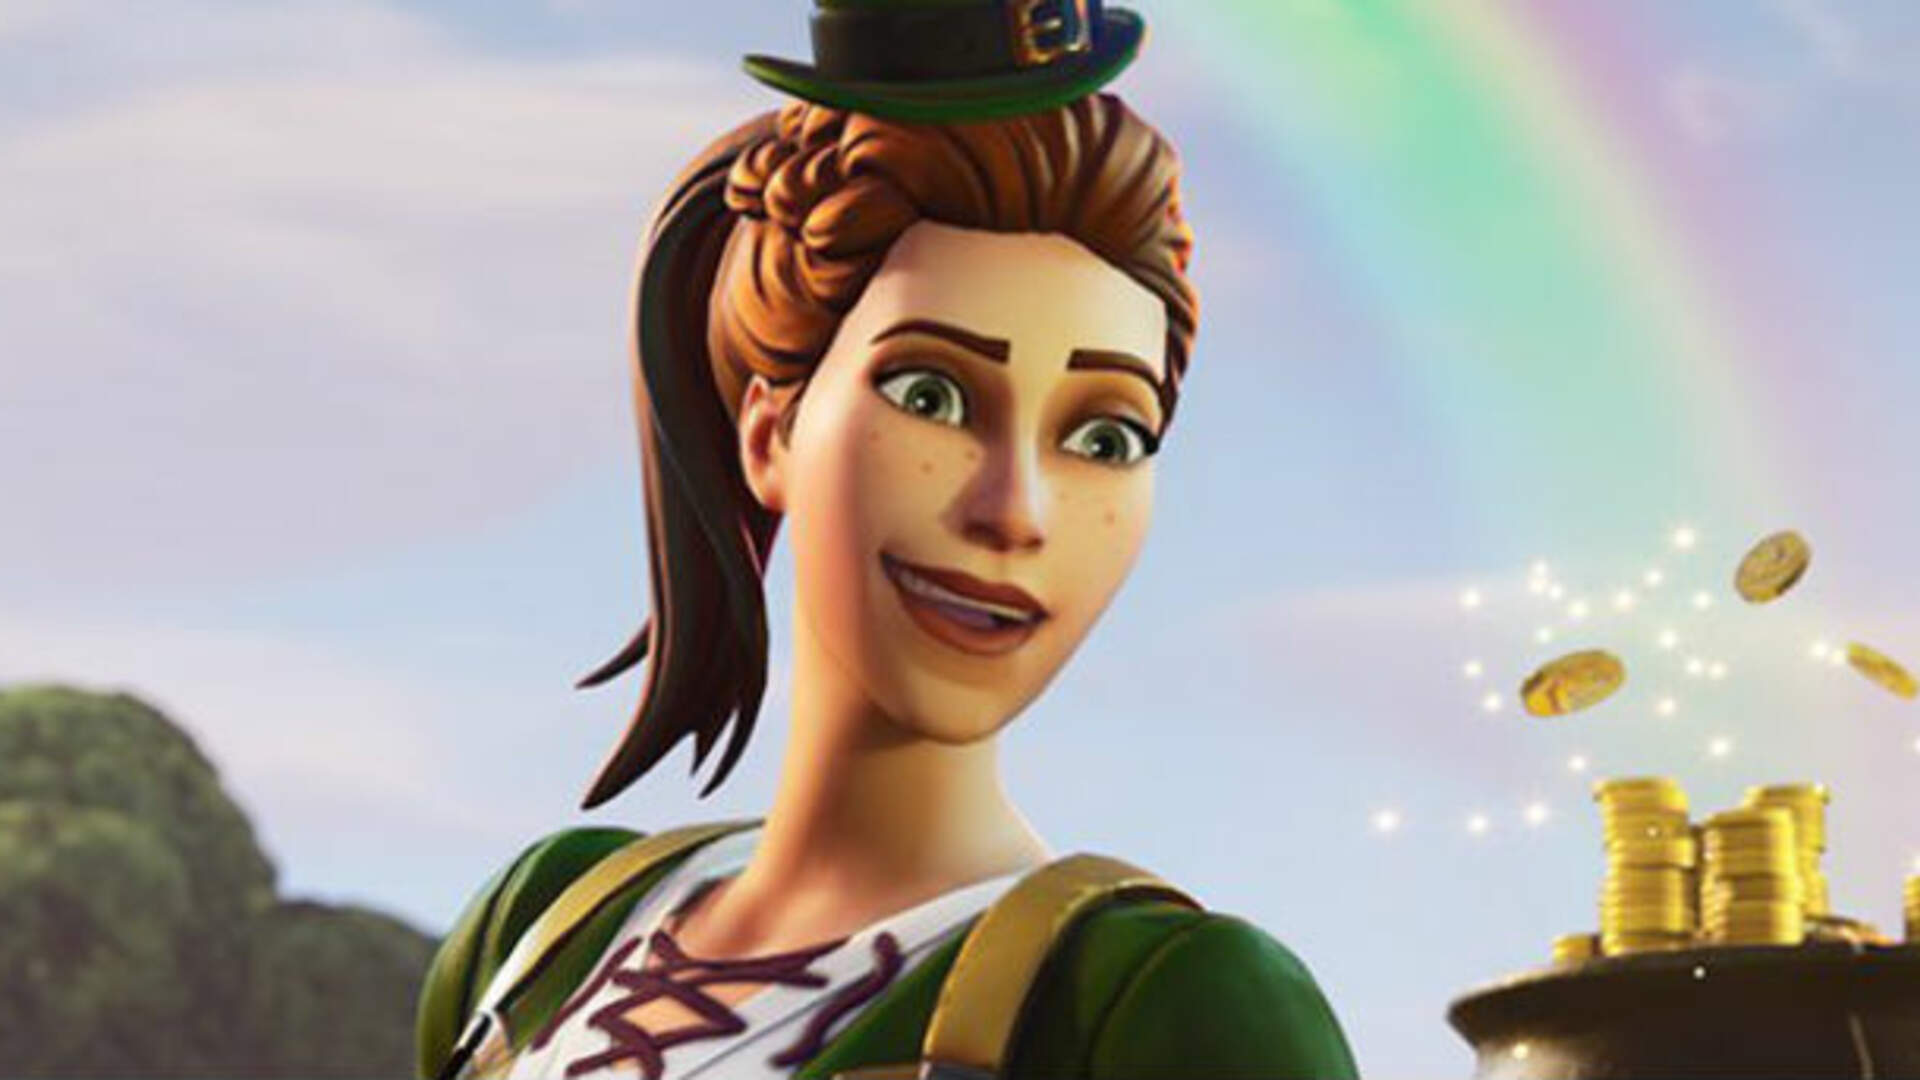 Fortnite's Sgt Green Clover Outfit is Back for a Limited Time